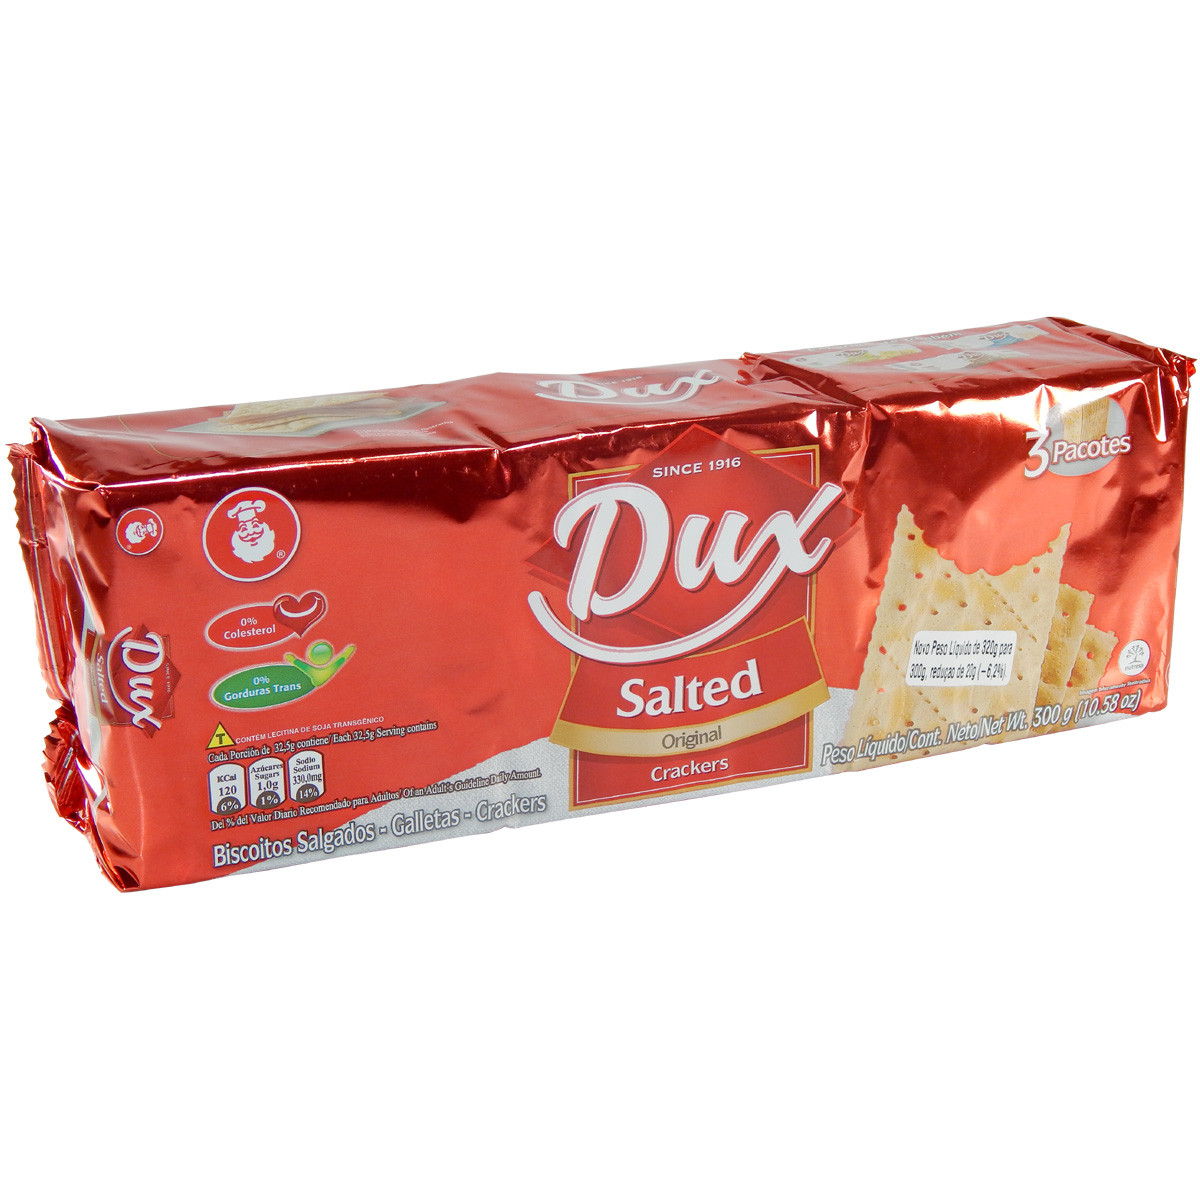 Dux crackers salted original